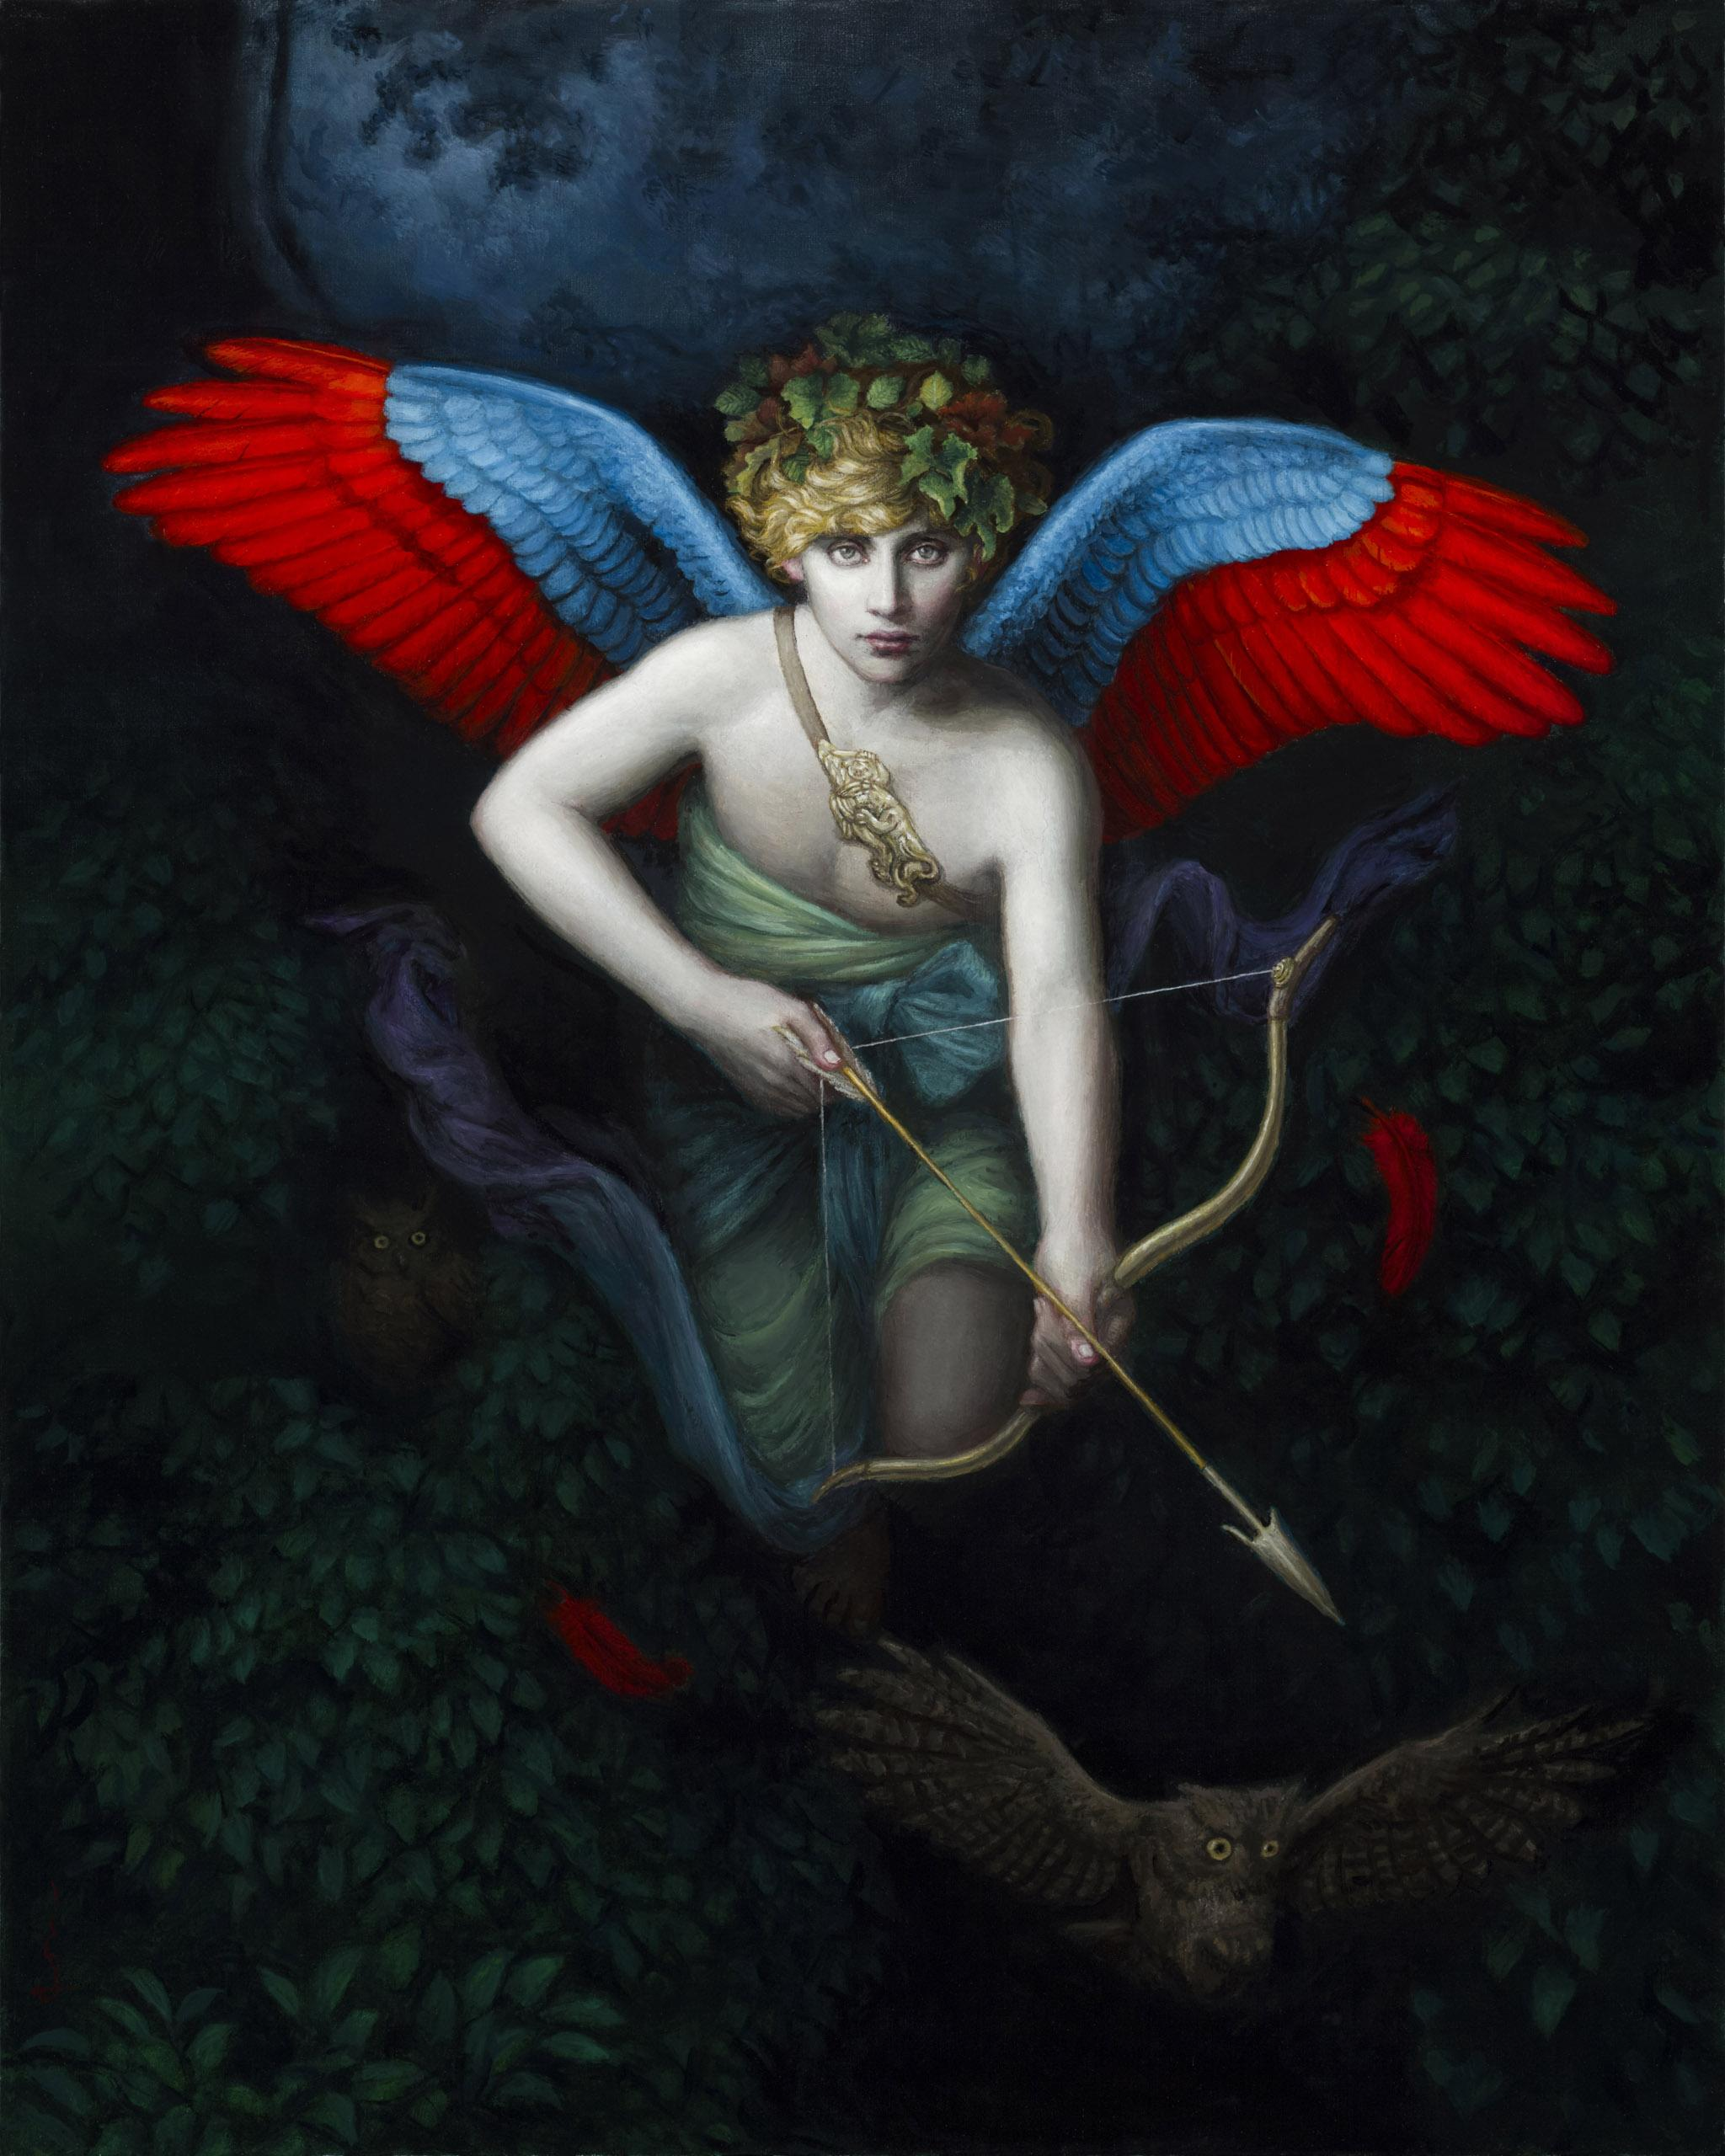 surreal art painting hunt by chie yoshii